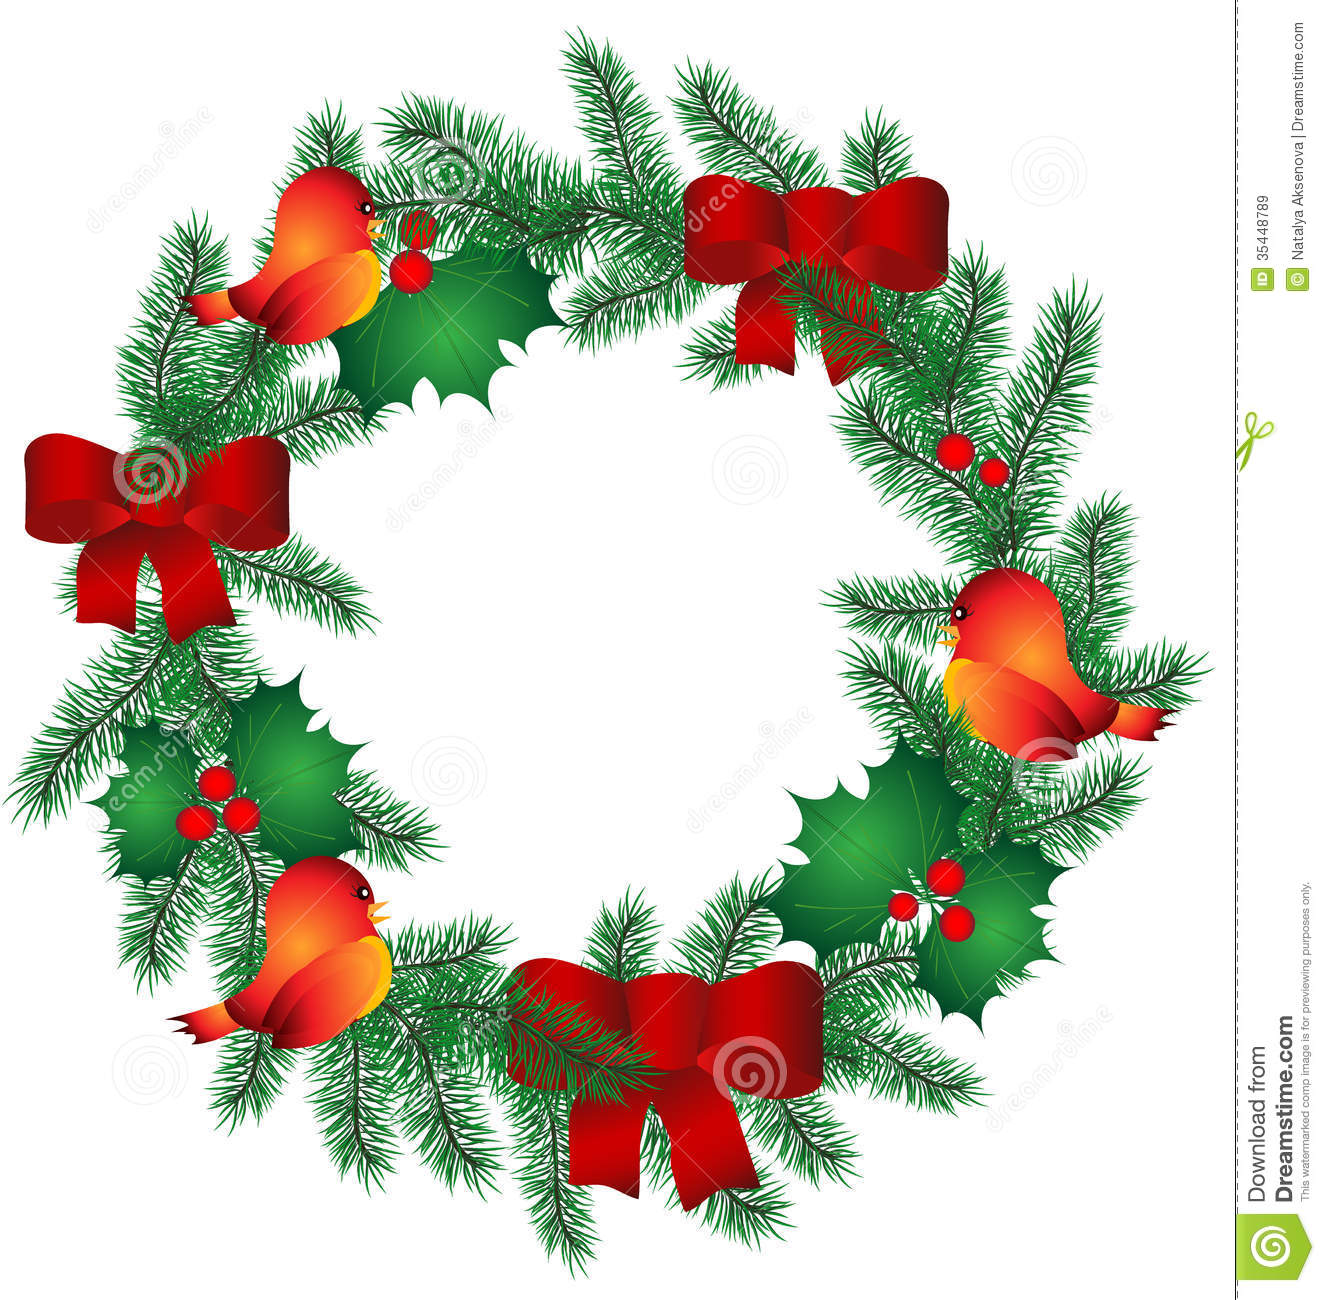 Christmas Wreath With Birds Stock Vector - Image: 46474292